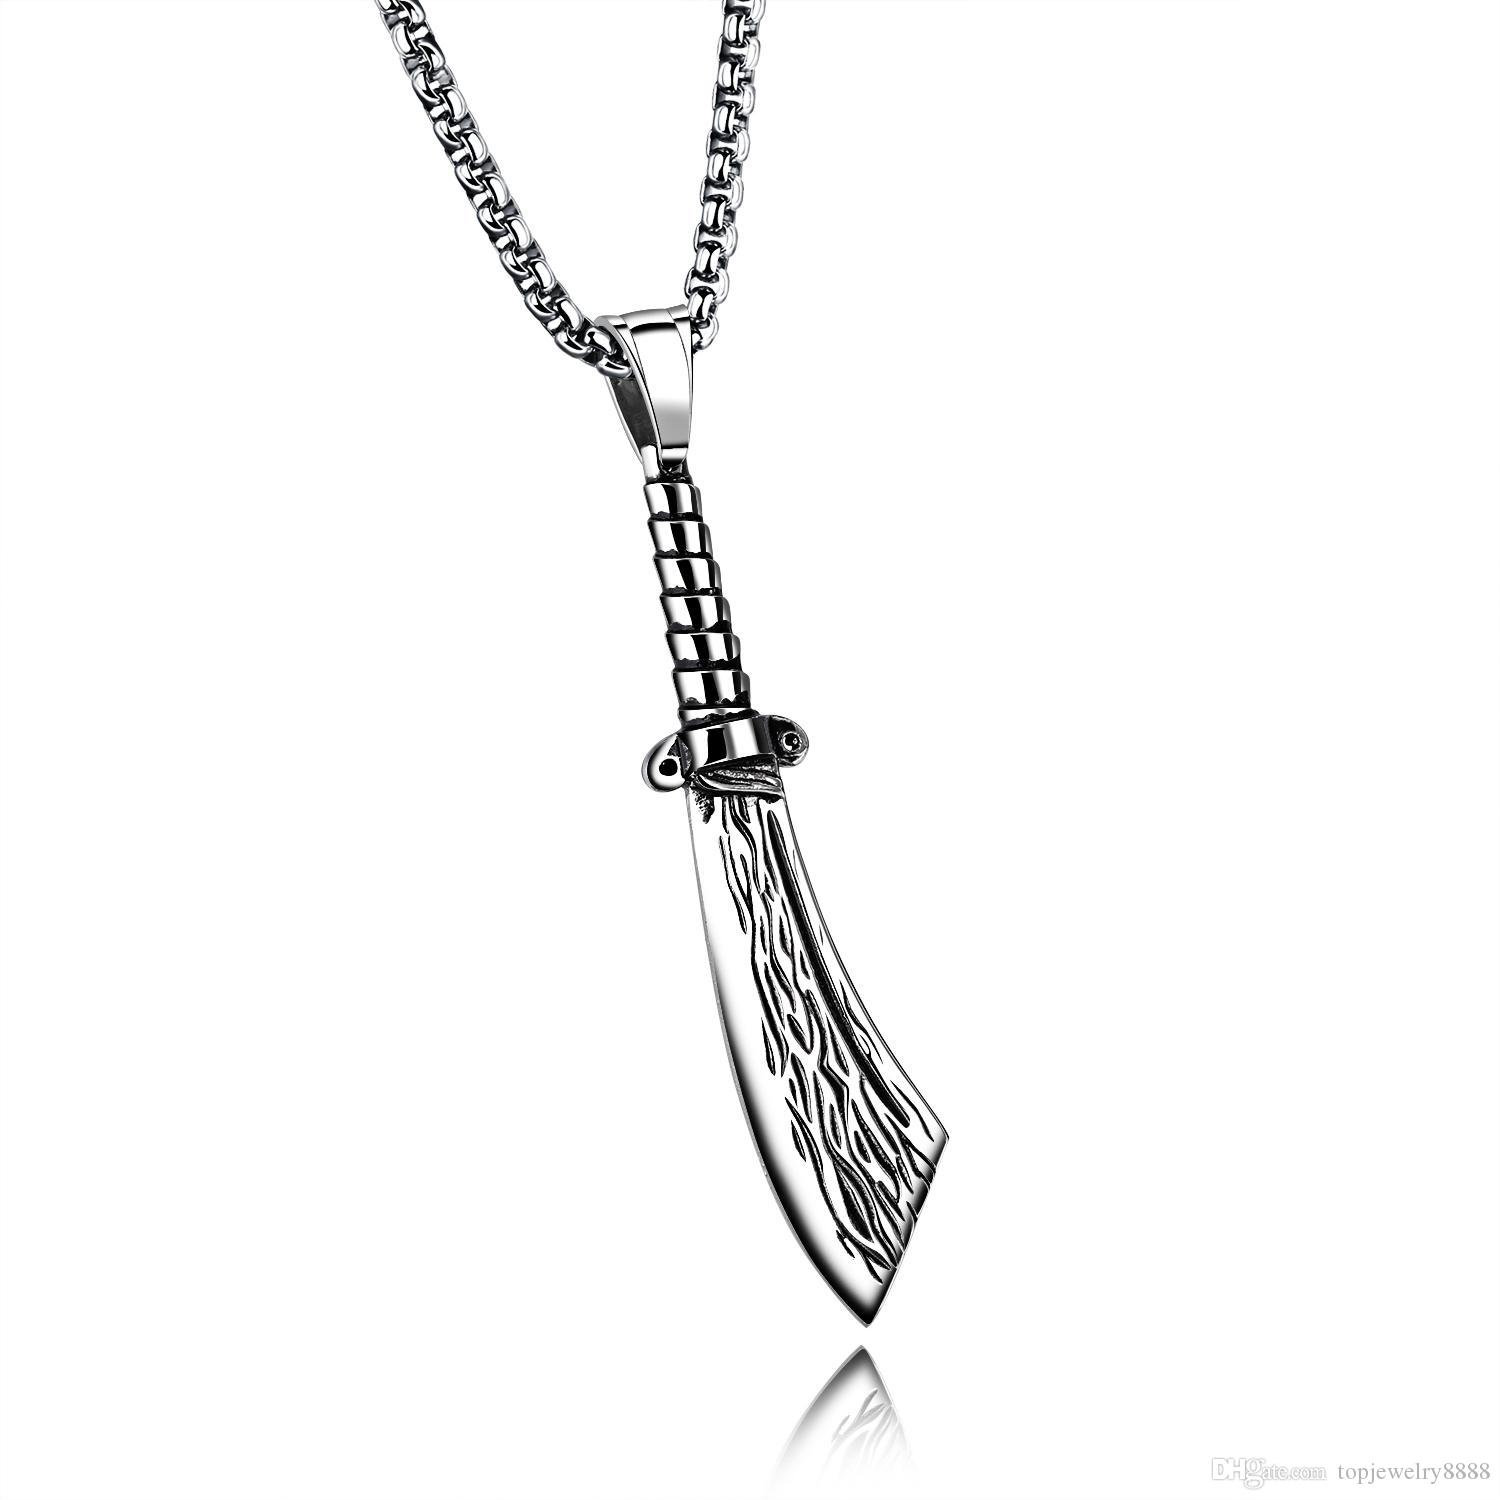 Shave Knife Pendant Necklace Men Stainless Steel Link Chain Silver Punk Man Necklace Hip Hop Jewelry Gift GX1344